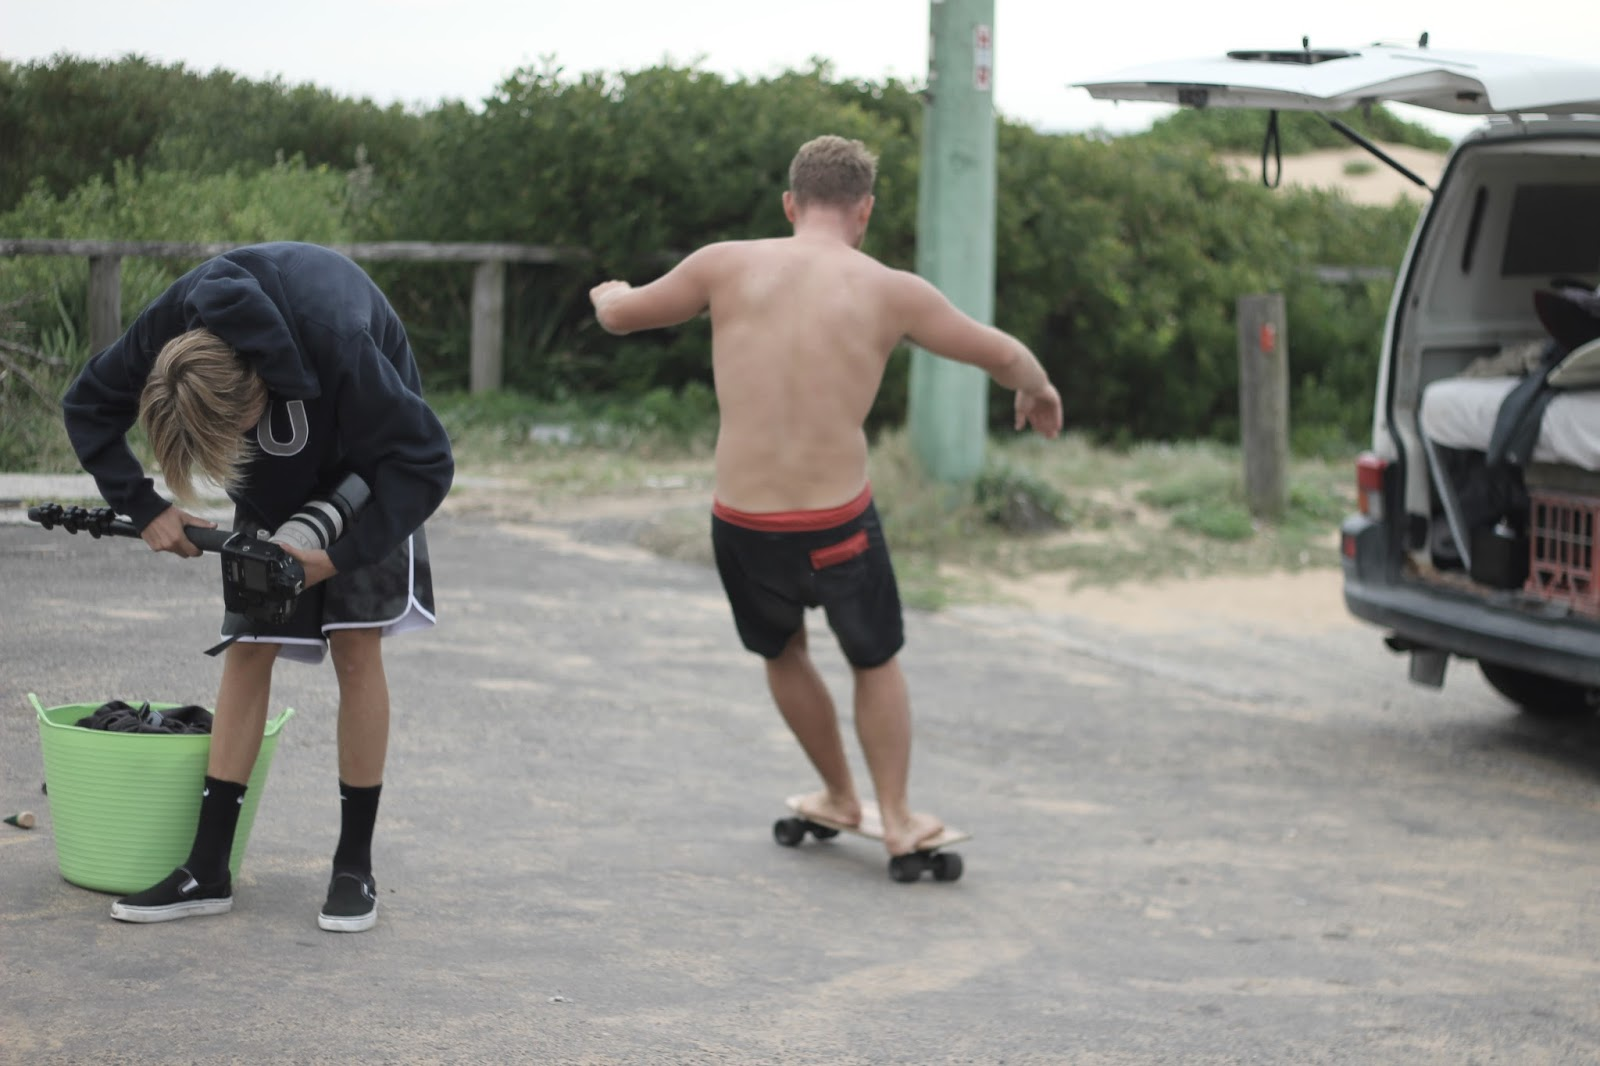 26-03-2016-australia-siebert-surfboards-02